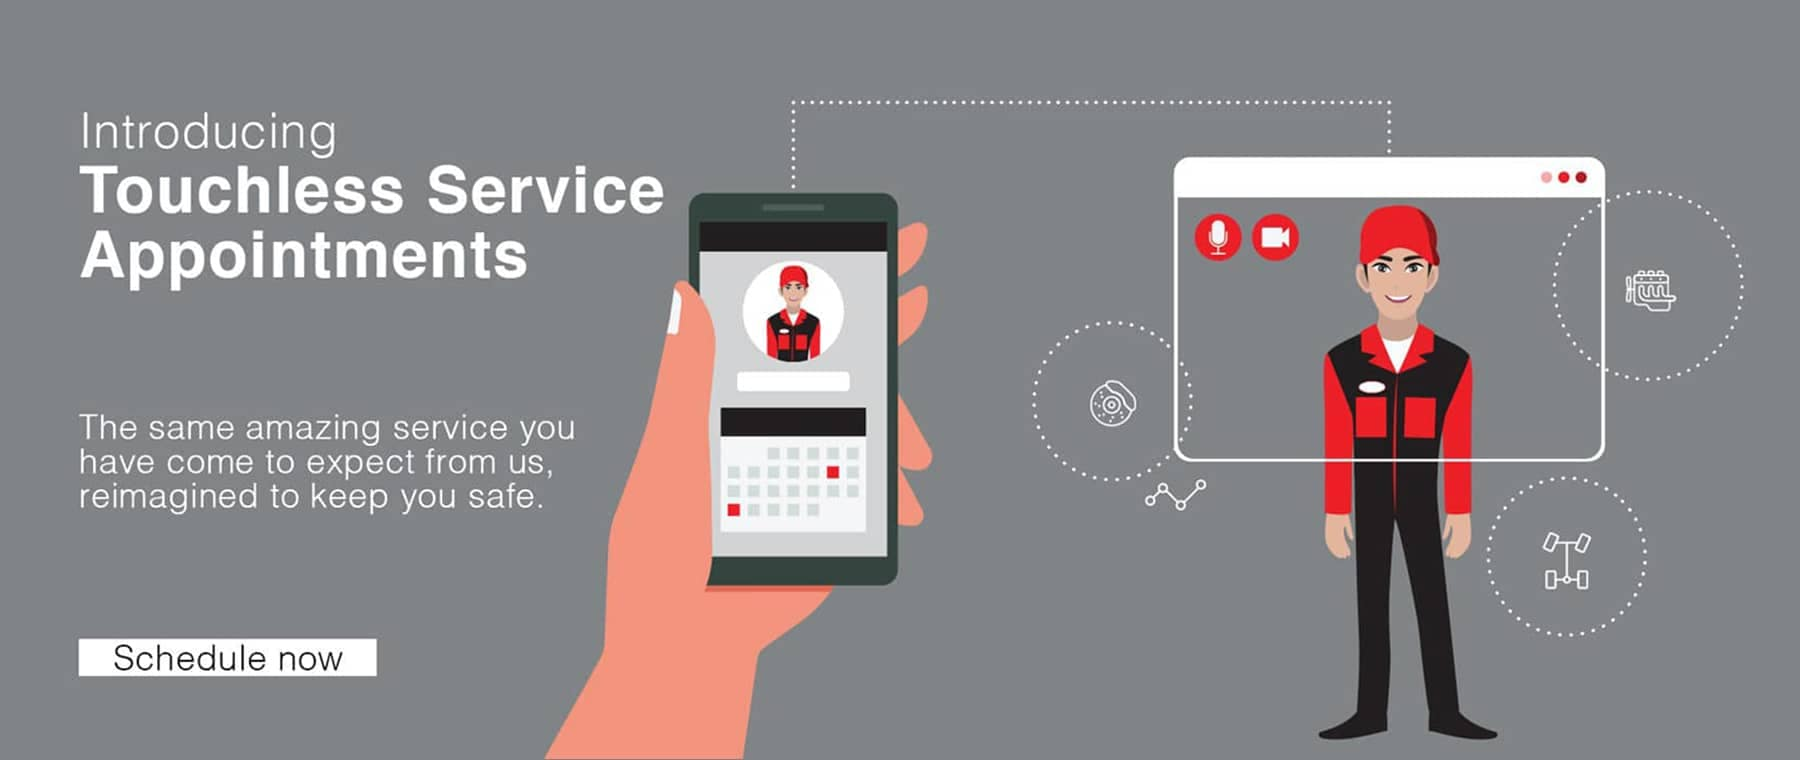 touchless service cartoon banner